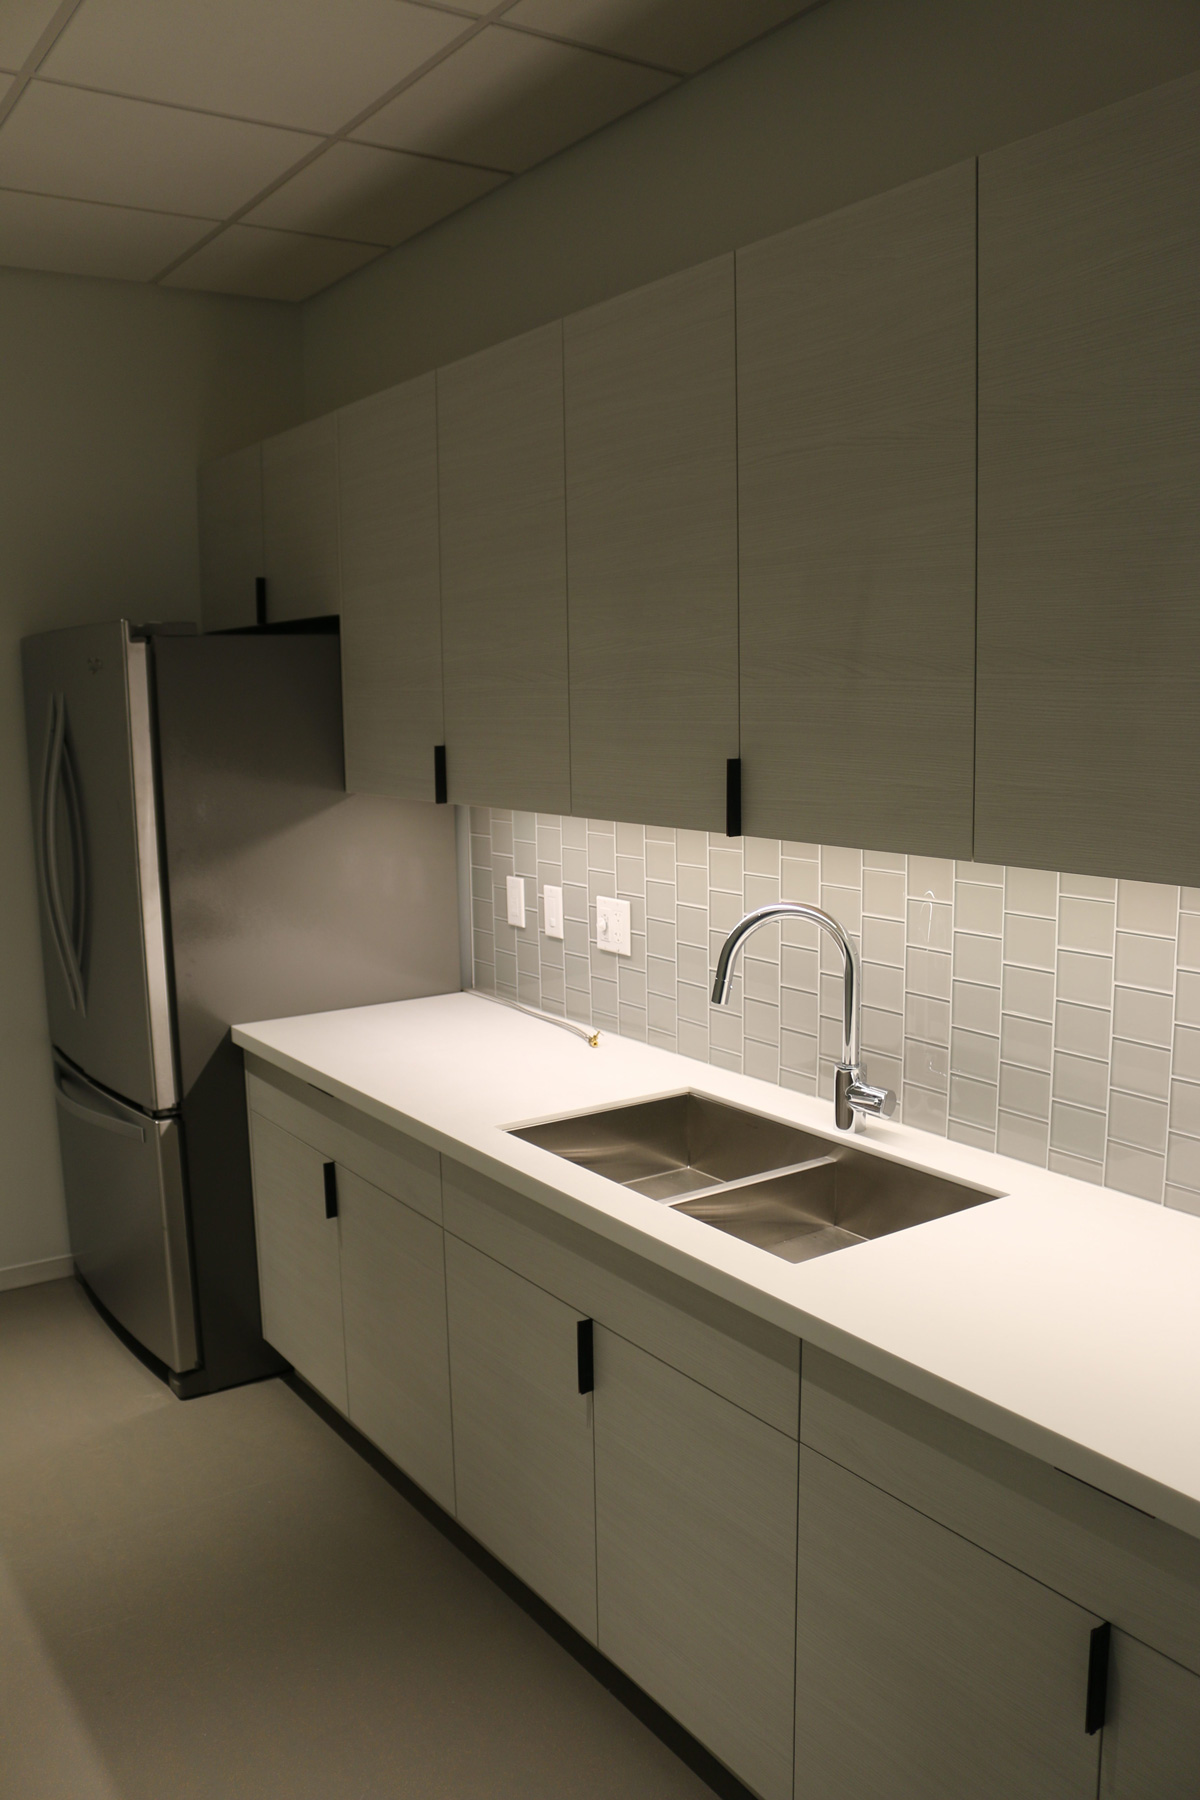 Kitchen with cupboards, countertop, tiles